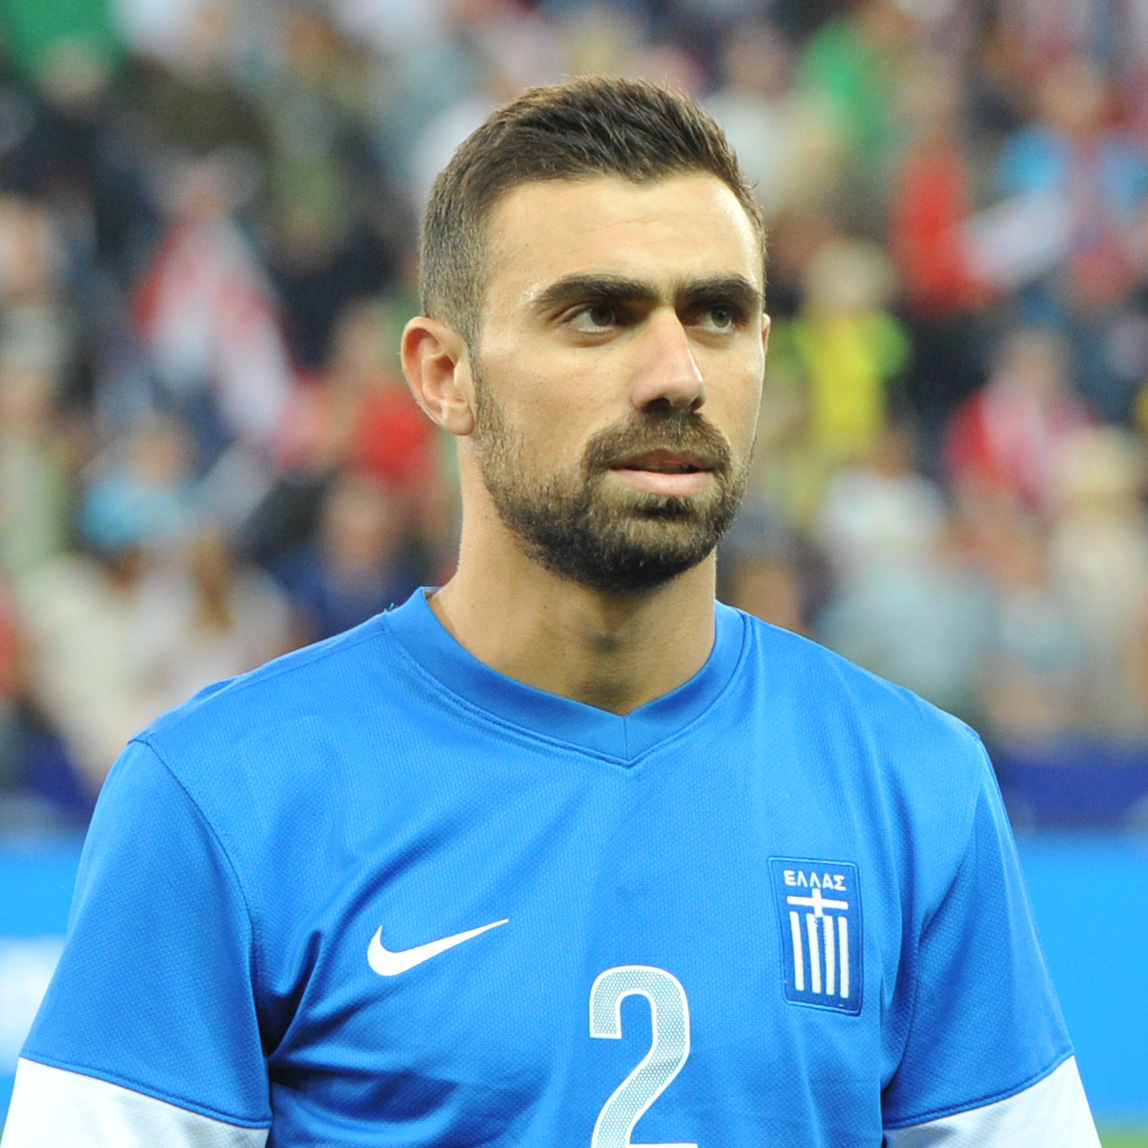 giannis maniatis - photo #23